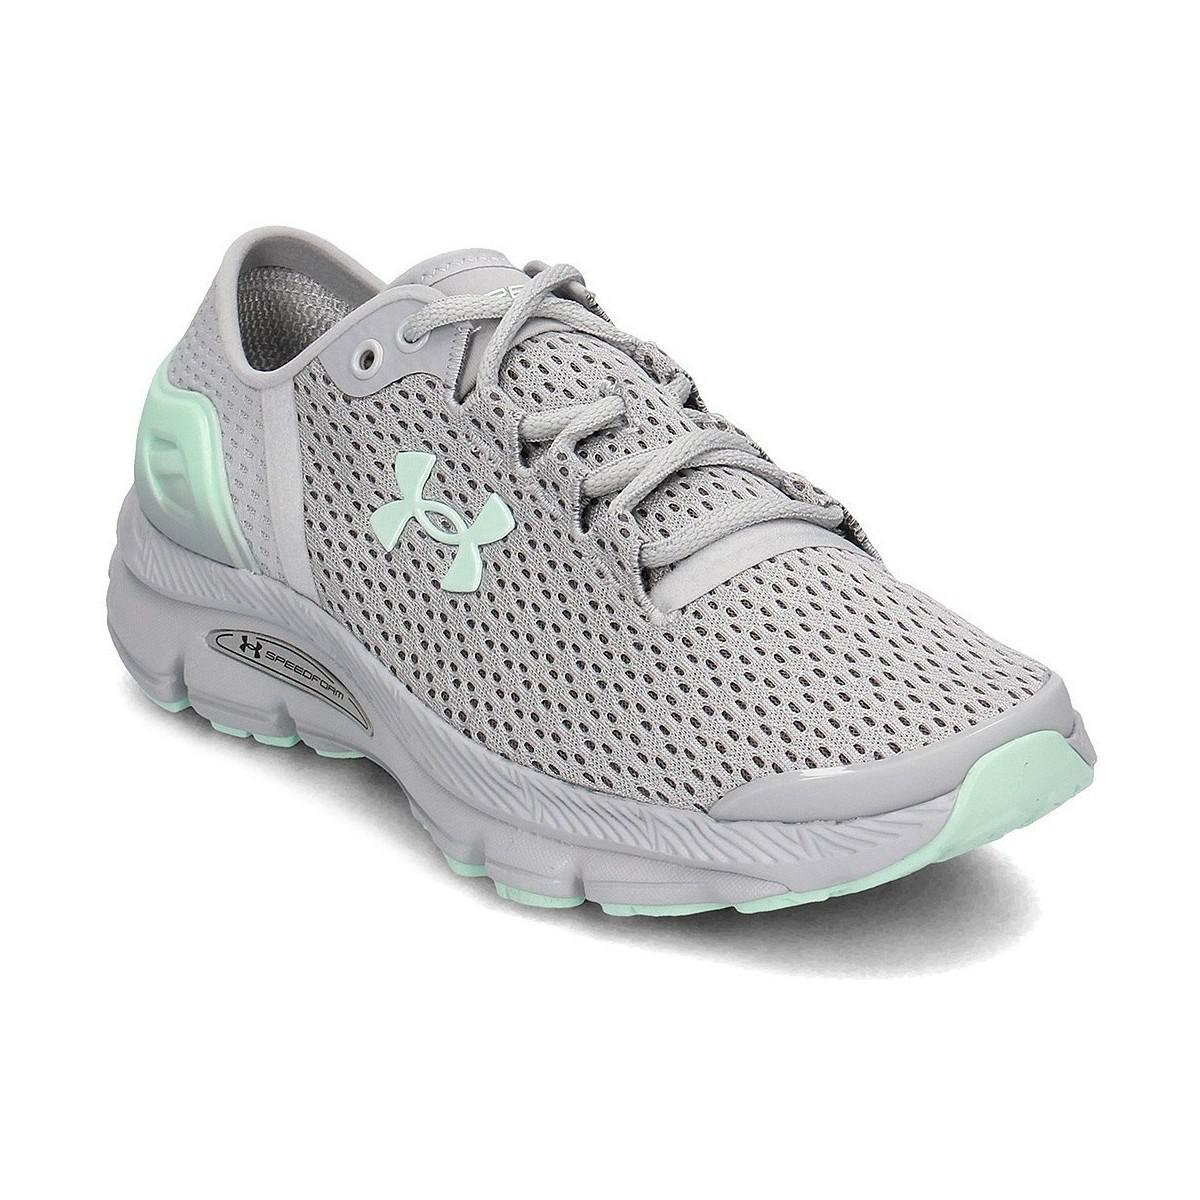 Under Armour Damens's Speedform Intake 2 Damens's Armour Schuhes (trainers) In Grau in 98aee5